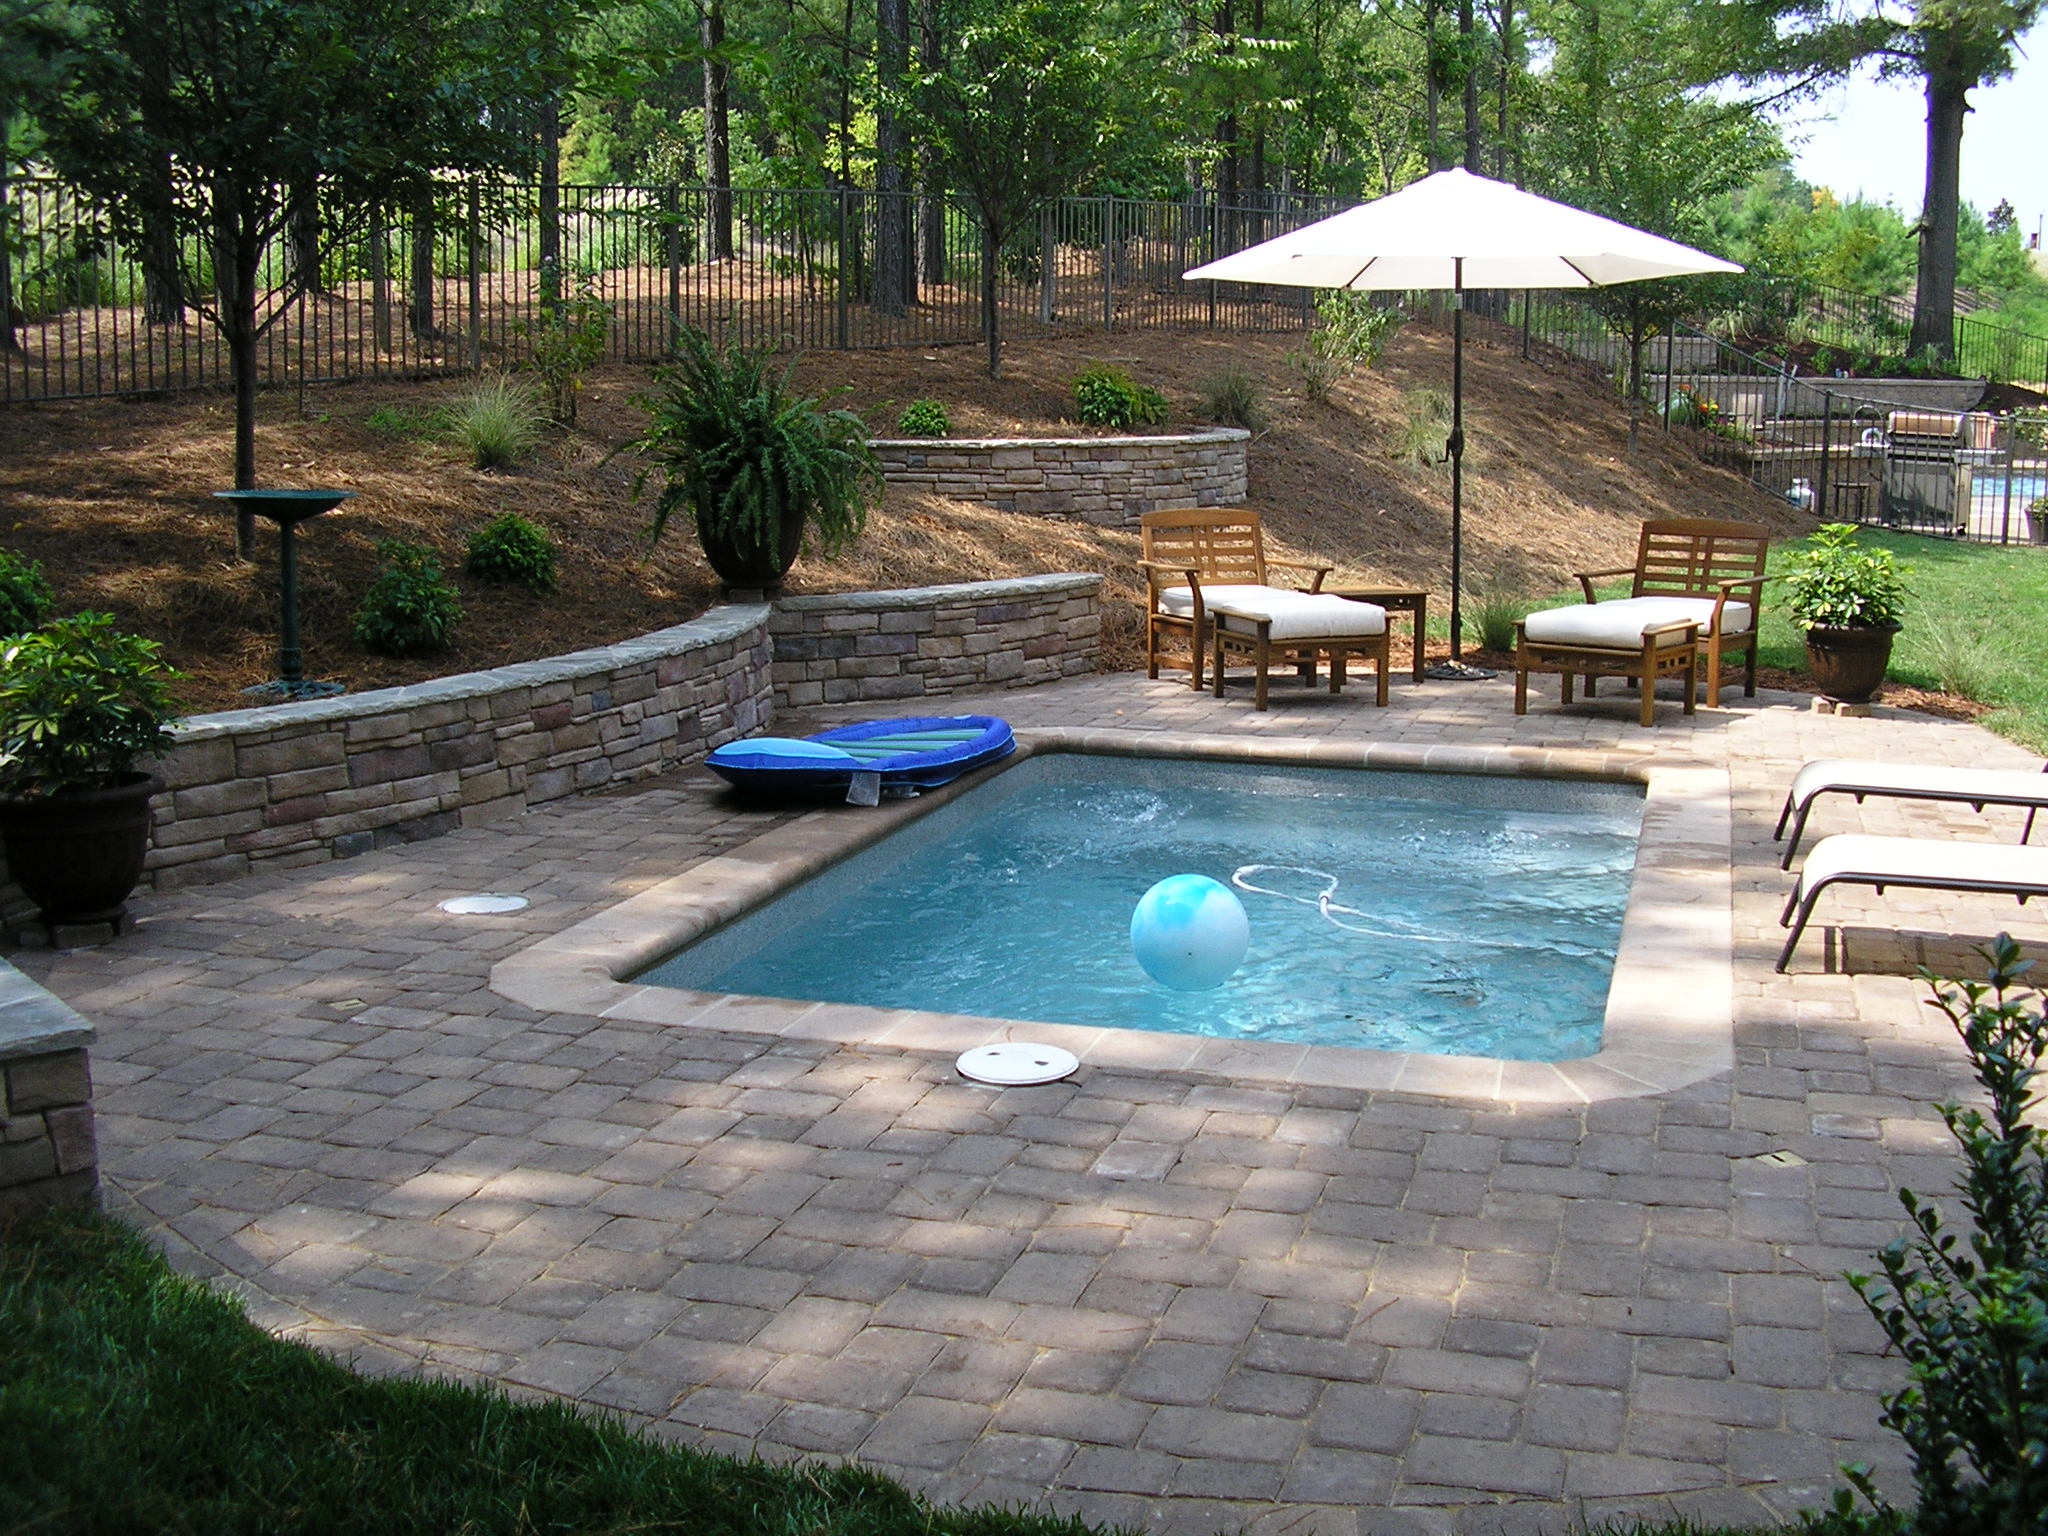 Cool Backyard Pool Designs for Your Outdoor Space: Houzz Backyards | Backyard Pool Designs | Custom Built Swimming Pools